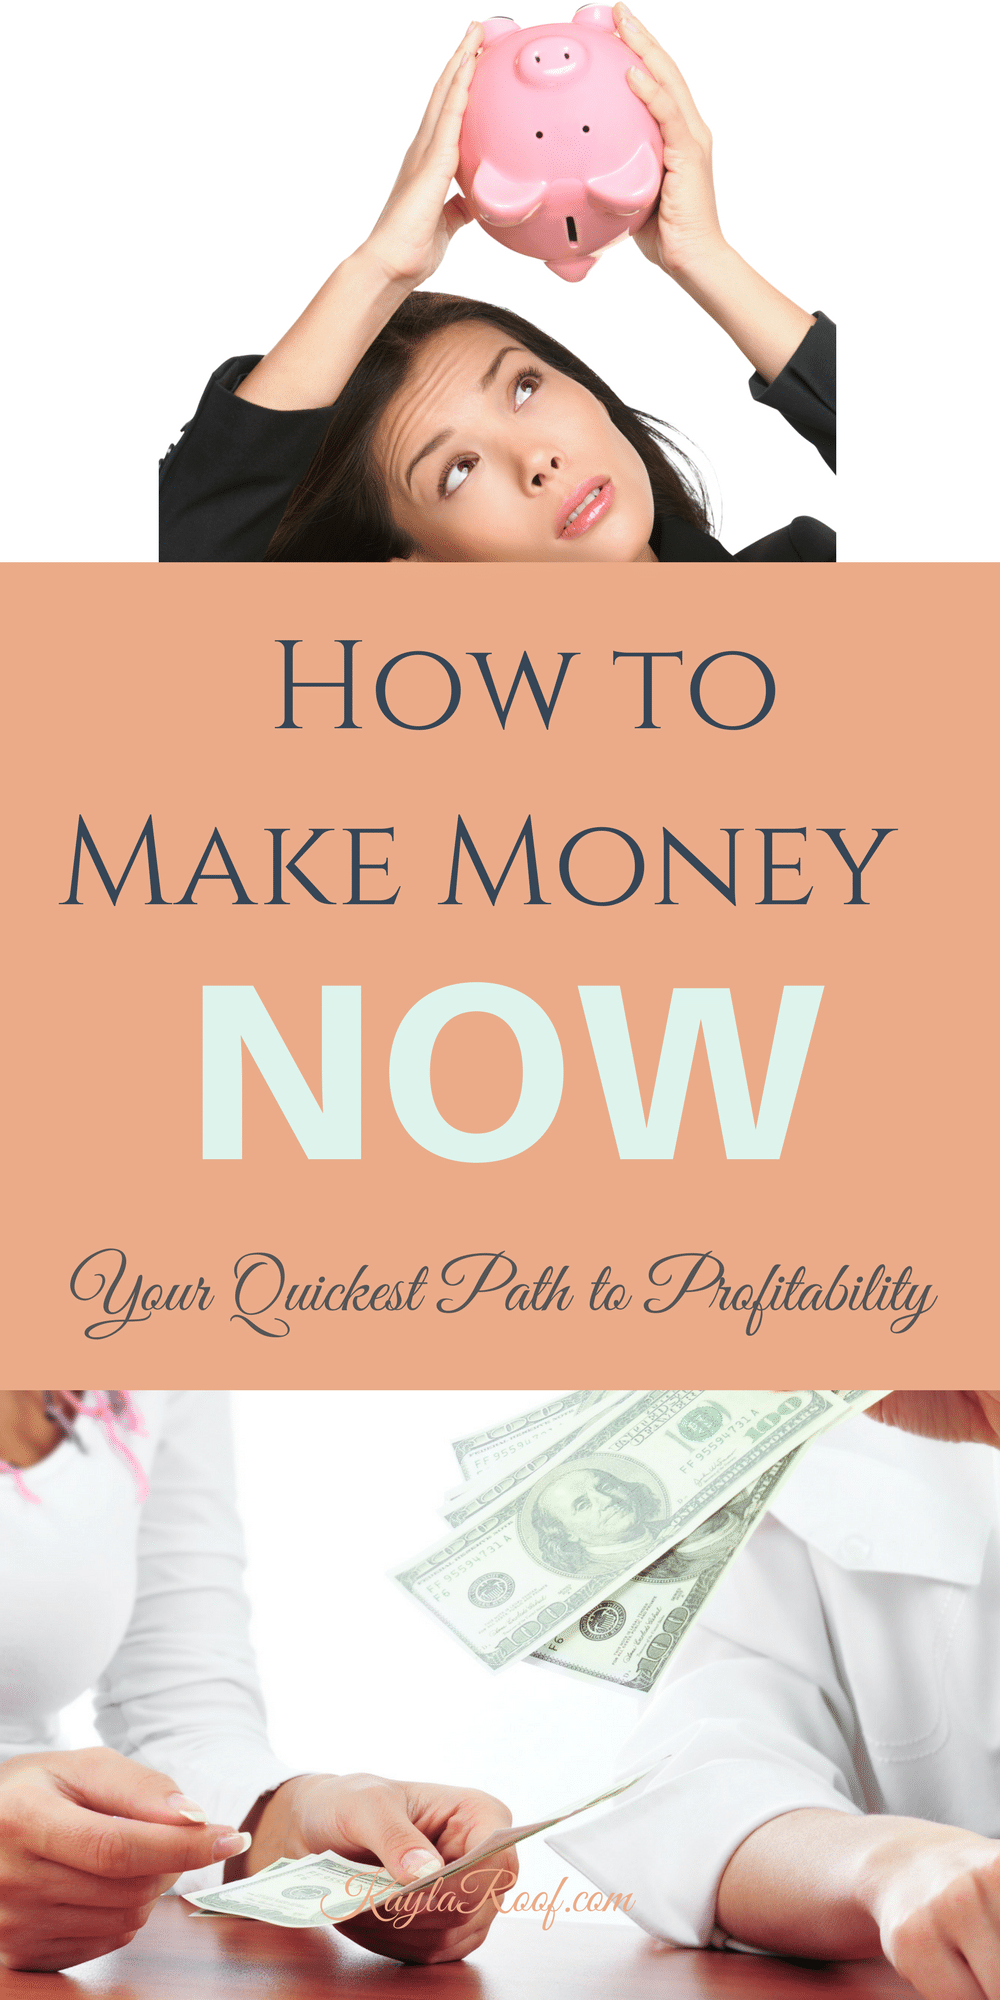 How to Make Money Now-Your Quickest Path to Profitability When Starting Your Own Business  KaylaRoof.com